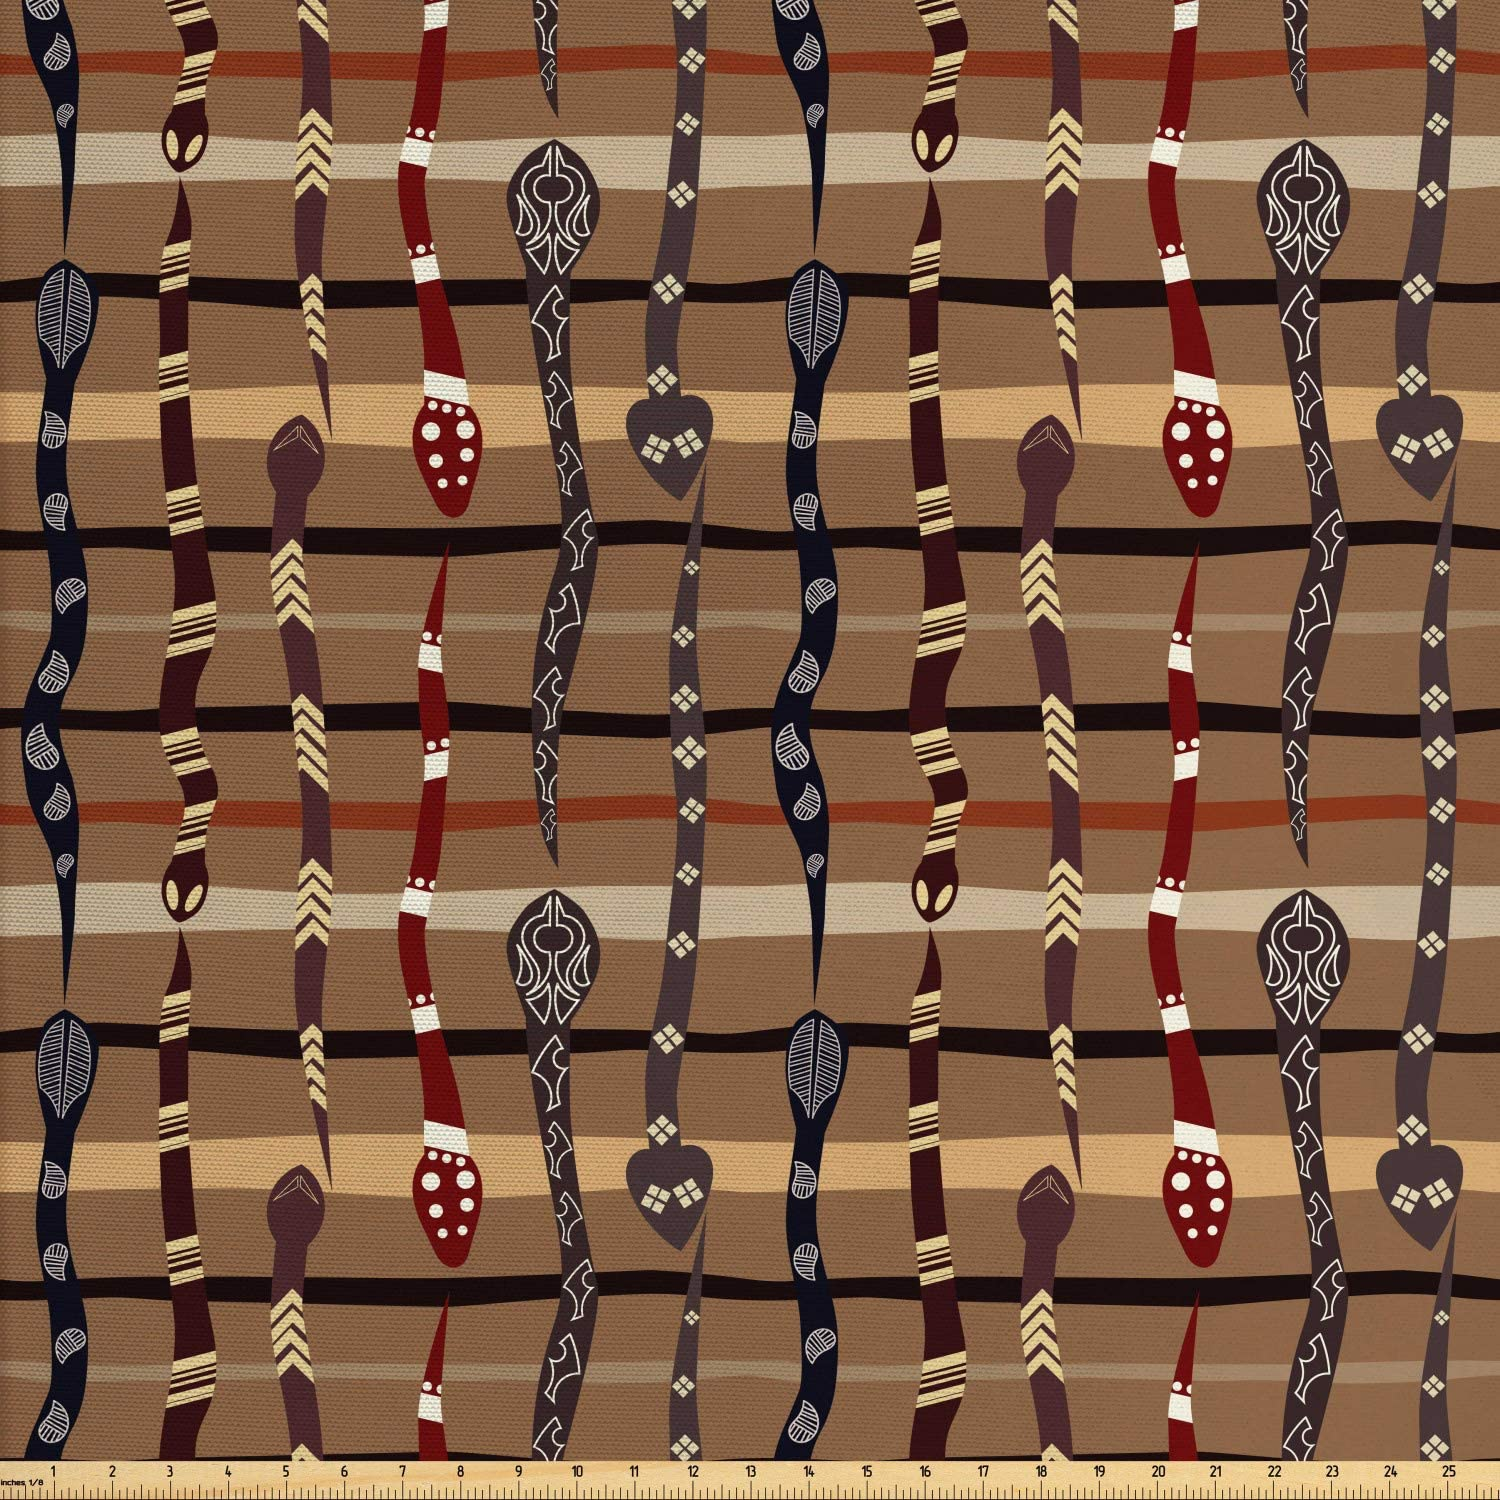 Ambesonne Tribal Fabric by The Yard, Wildlife Prehistoric Funky Snakes Traditional Oriental Arrangement, Decorative Fabric for Upholstery and Home Accents, 3 Yards, Brown Ruby